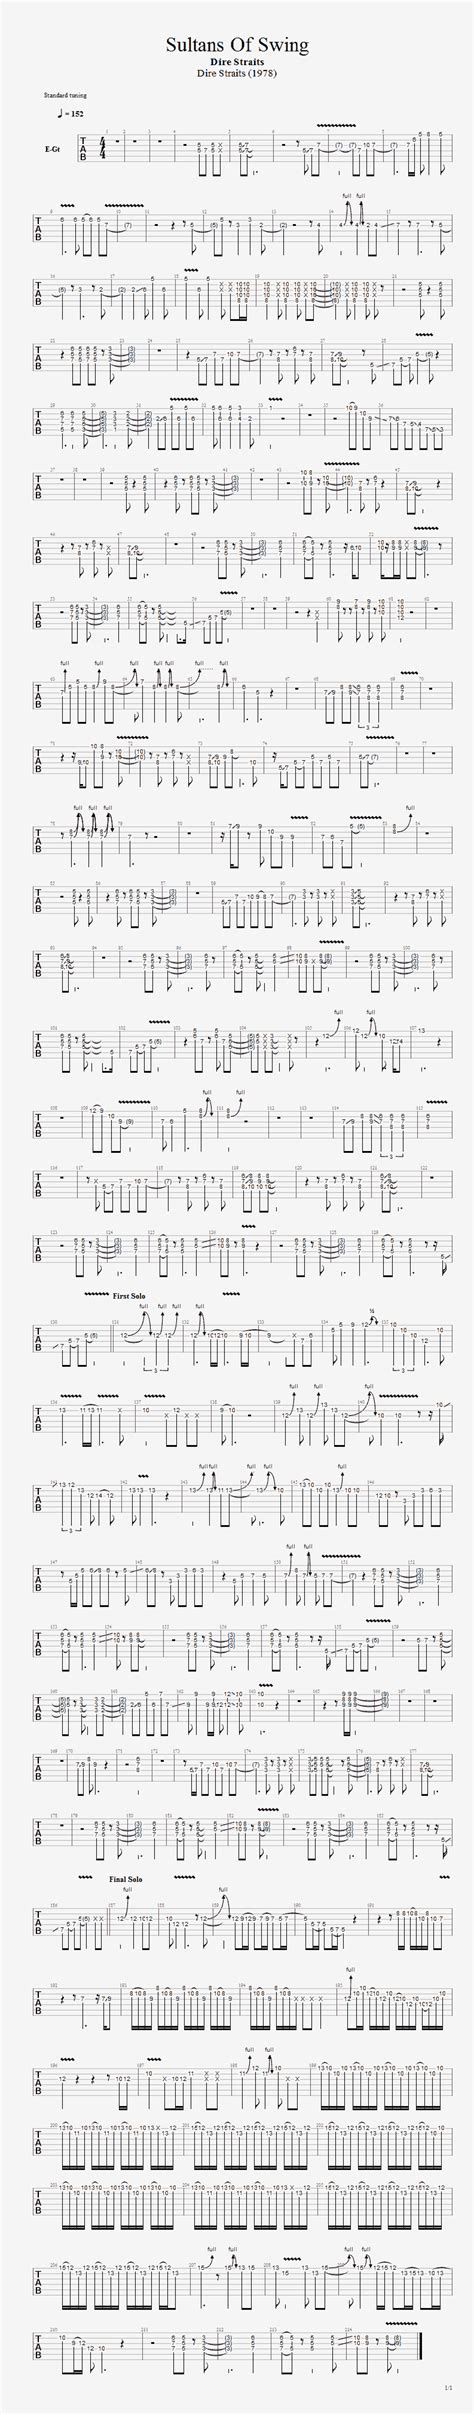 sultans of swing guitar tab sultans of swing guitar tab guitarnick